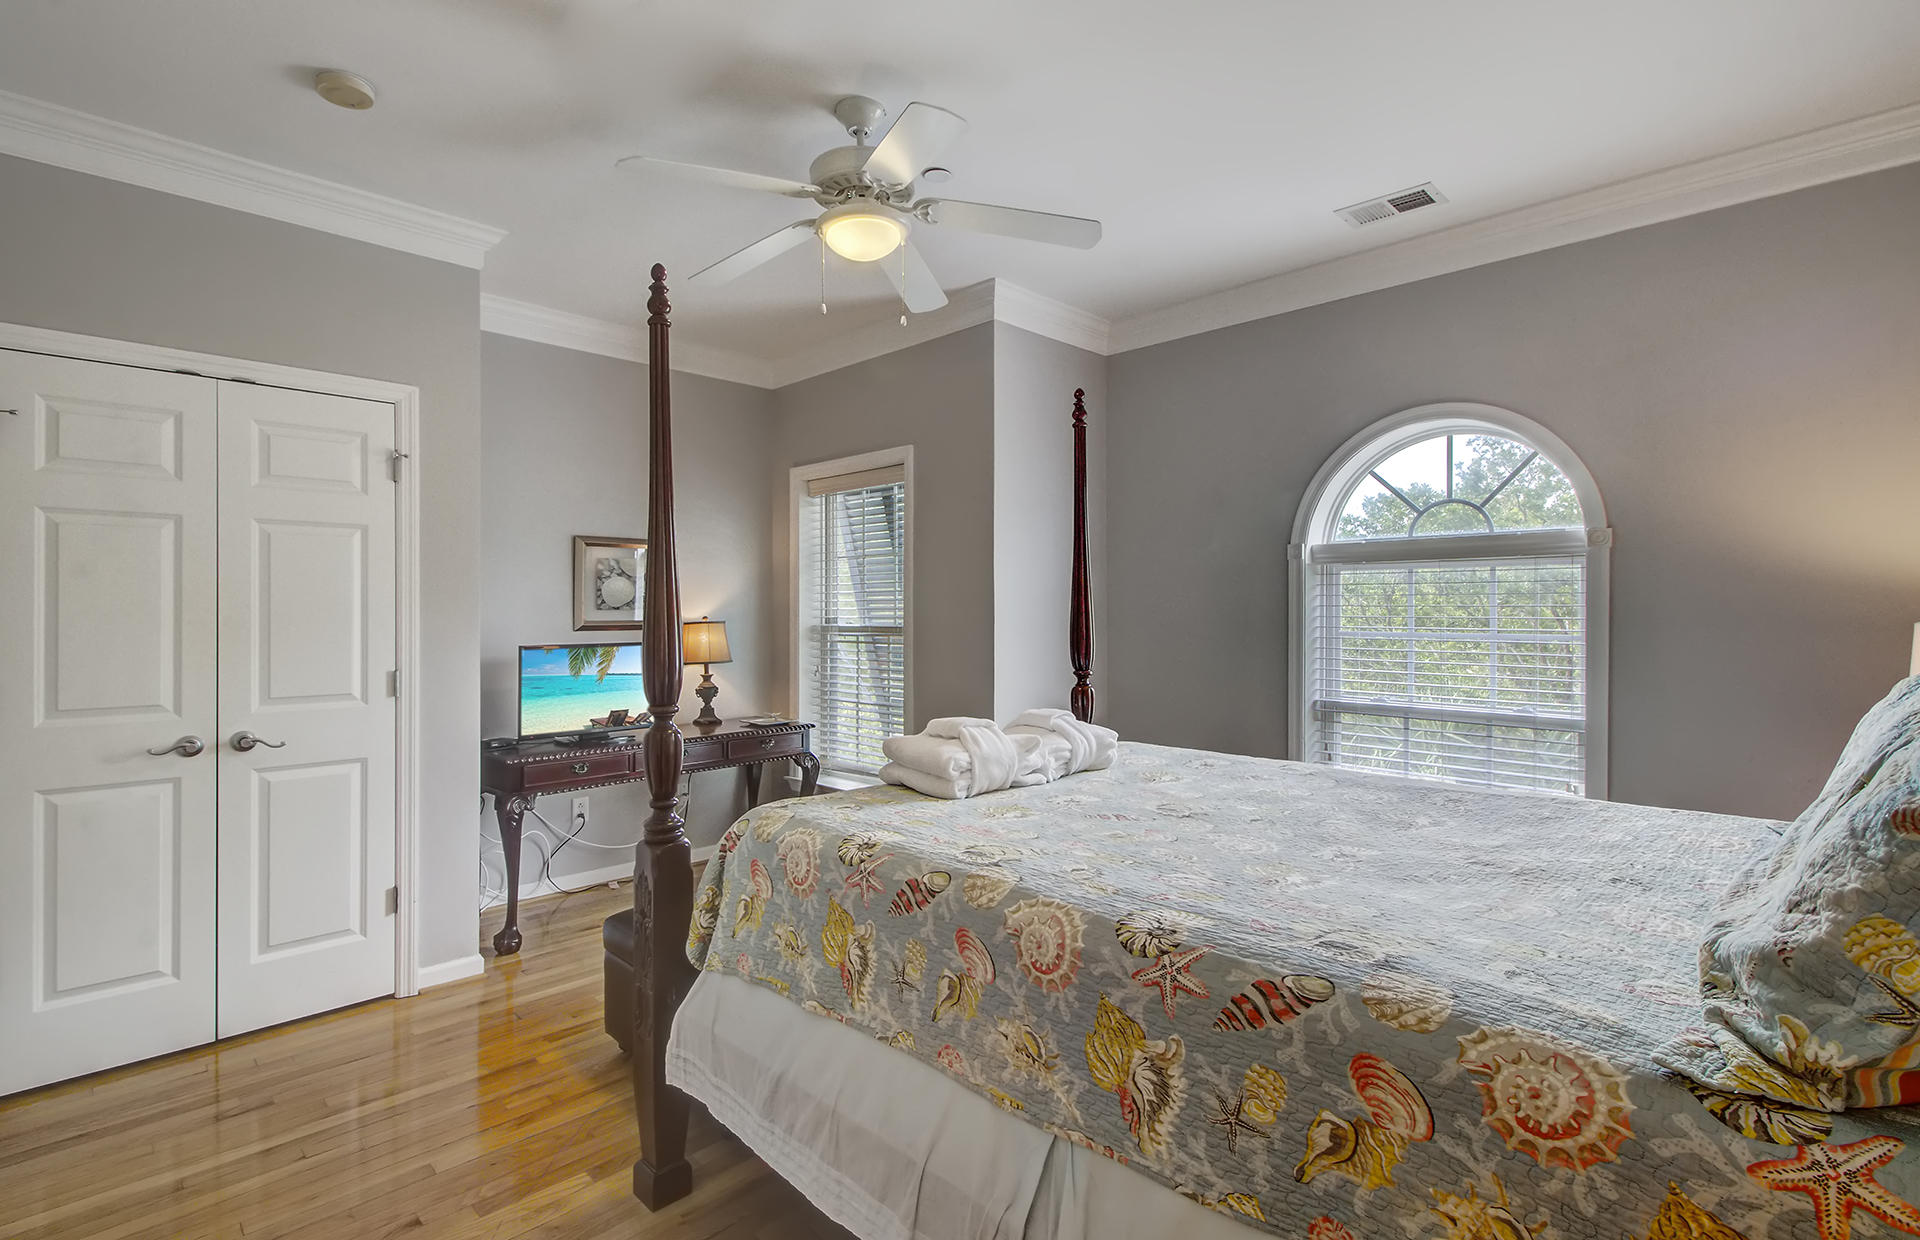 Waters Edge Homes For Sale - 80 2nd, Folly Beach, SC - 1